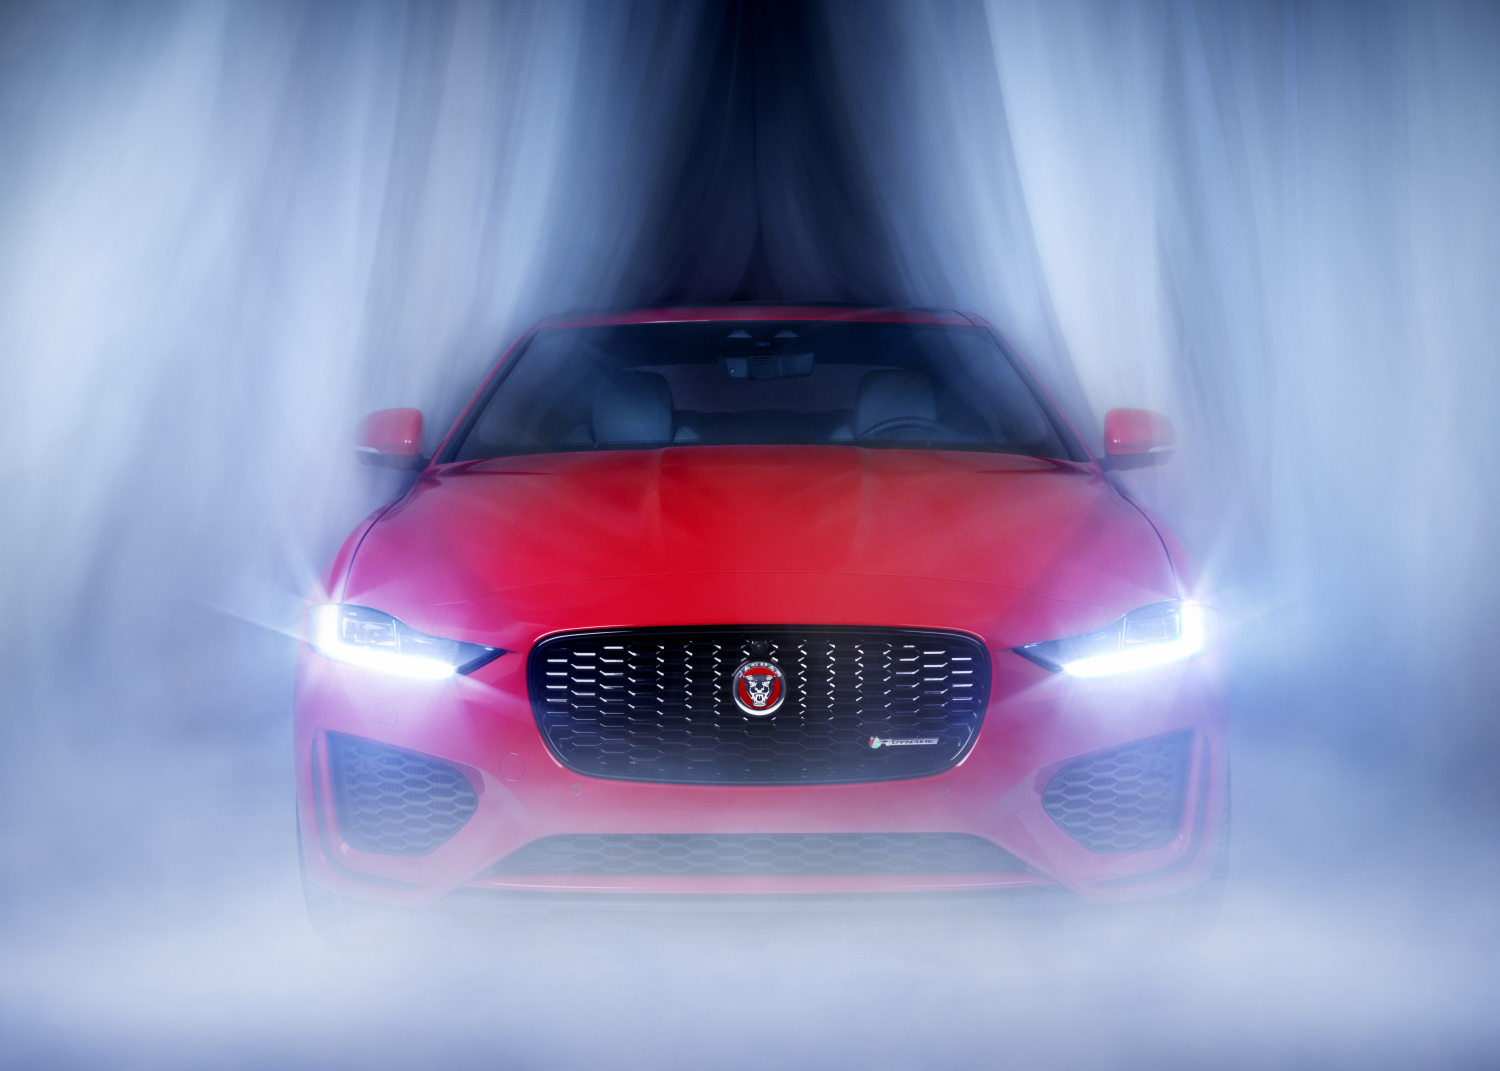 MOVING IN THE MIST - JAGUAR AND PHOTOGRAPHER RANKIN COLLABORATE TO CREATE STUNNING NEW ART